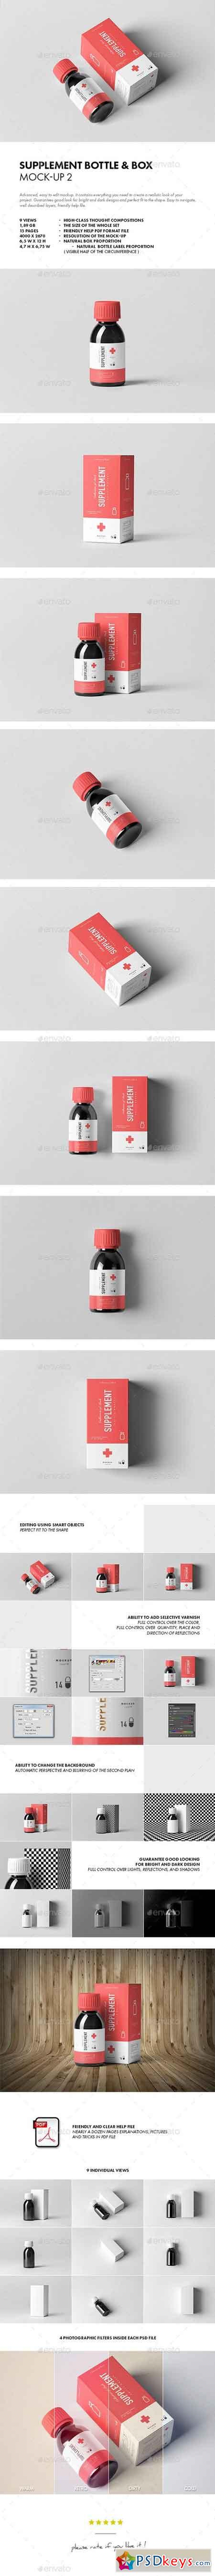 Supplement Bottle & Box Mock-up 2 21082382